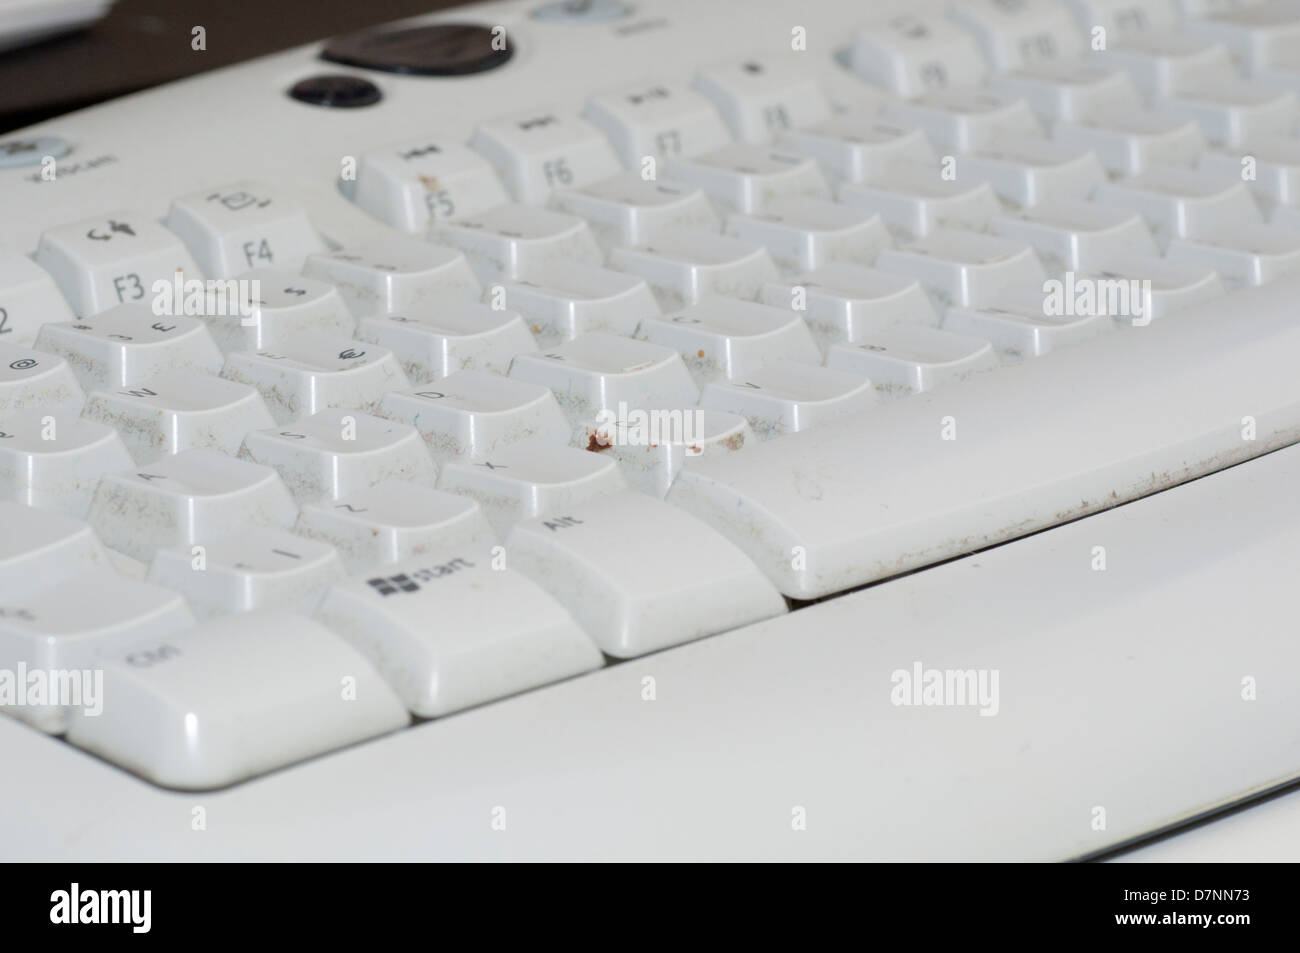 Close-up of a filthy, real-life computer keyboard - Stock Image